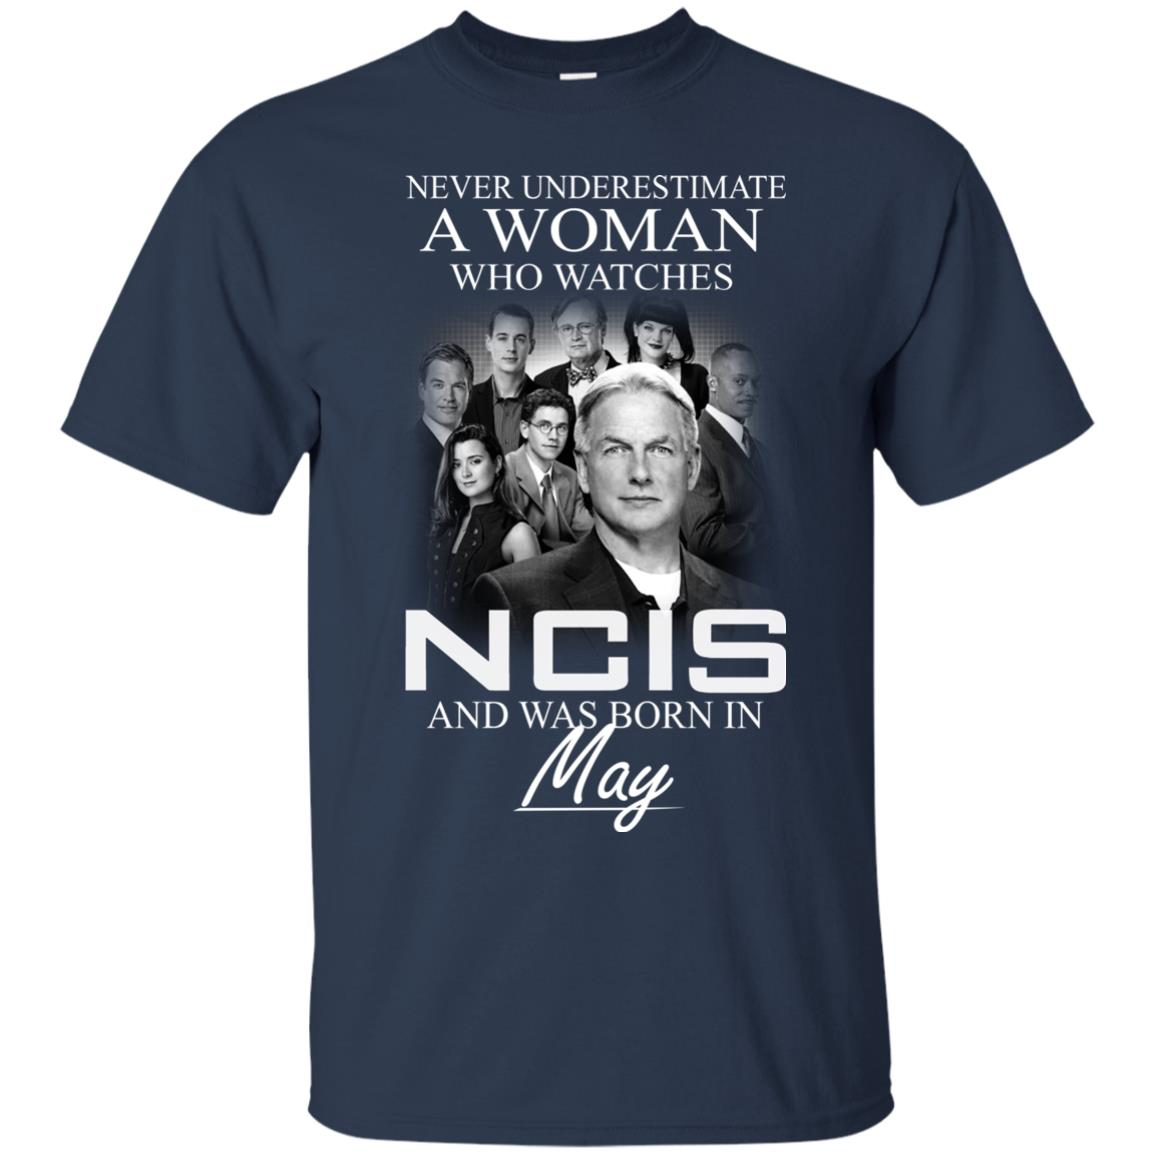 Never underestimate A Woman who watches NCIS and was born in May shirt - image 1183